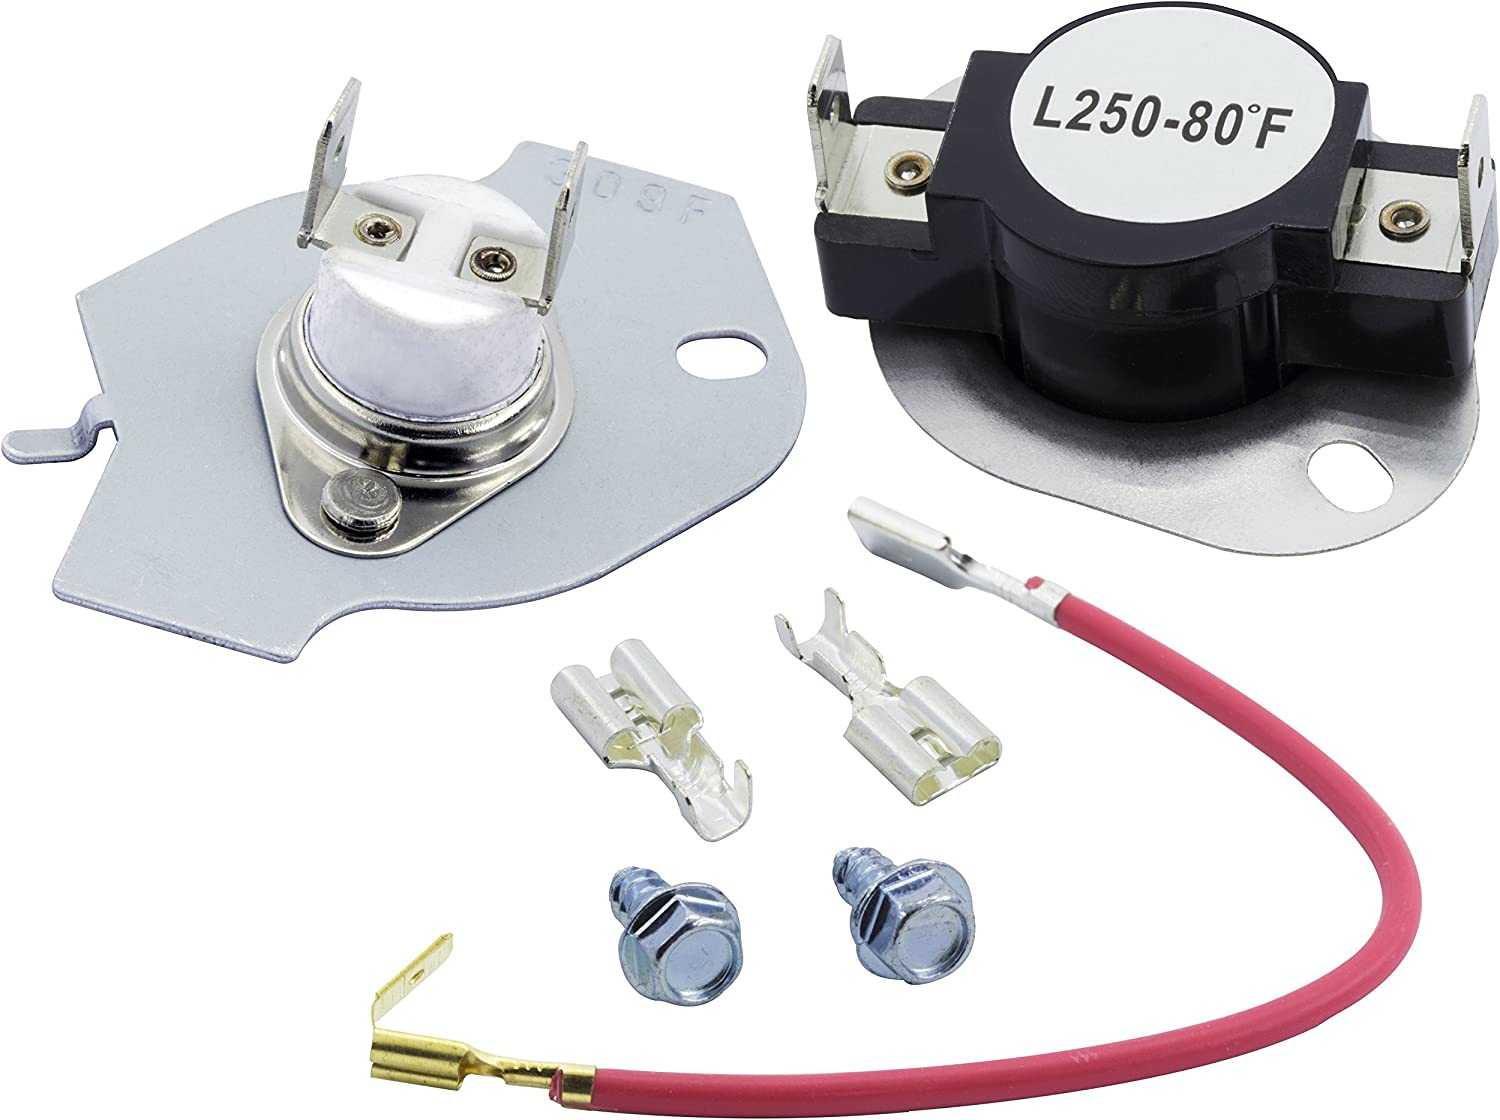 SEARS 279973 MAYTAG DRYER THERMAL CUT OFF KIT FOR WHIRLPOOL 2PK KENMORE